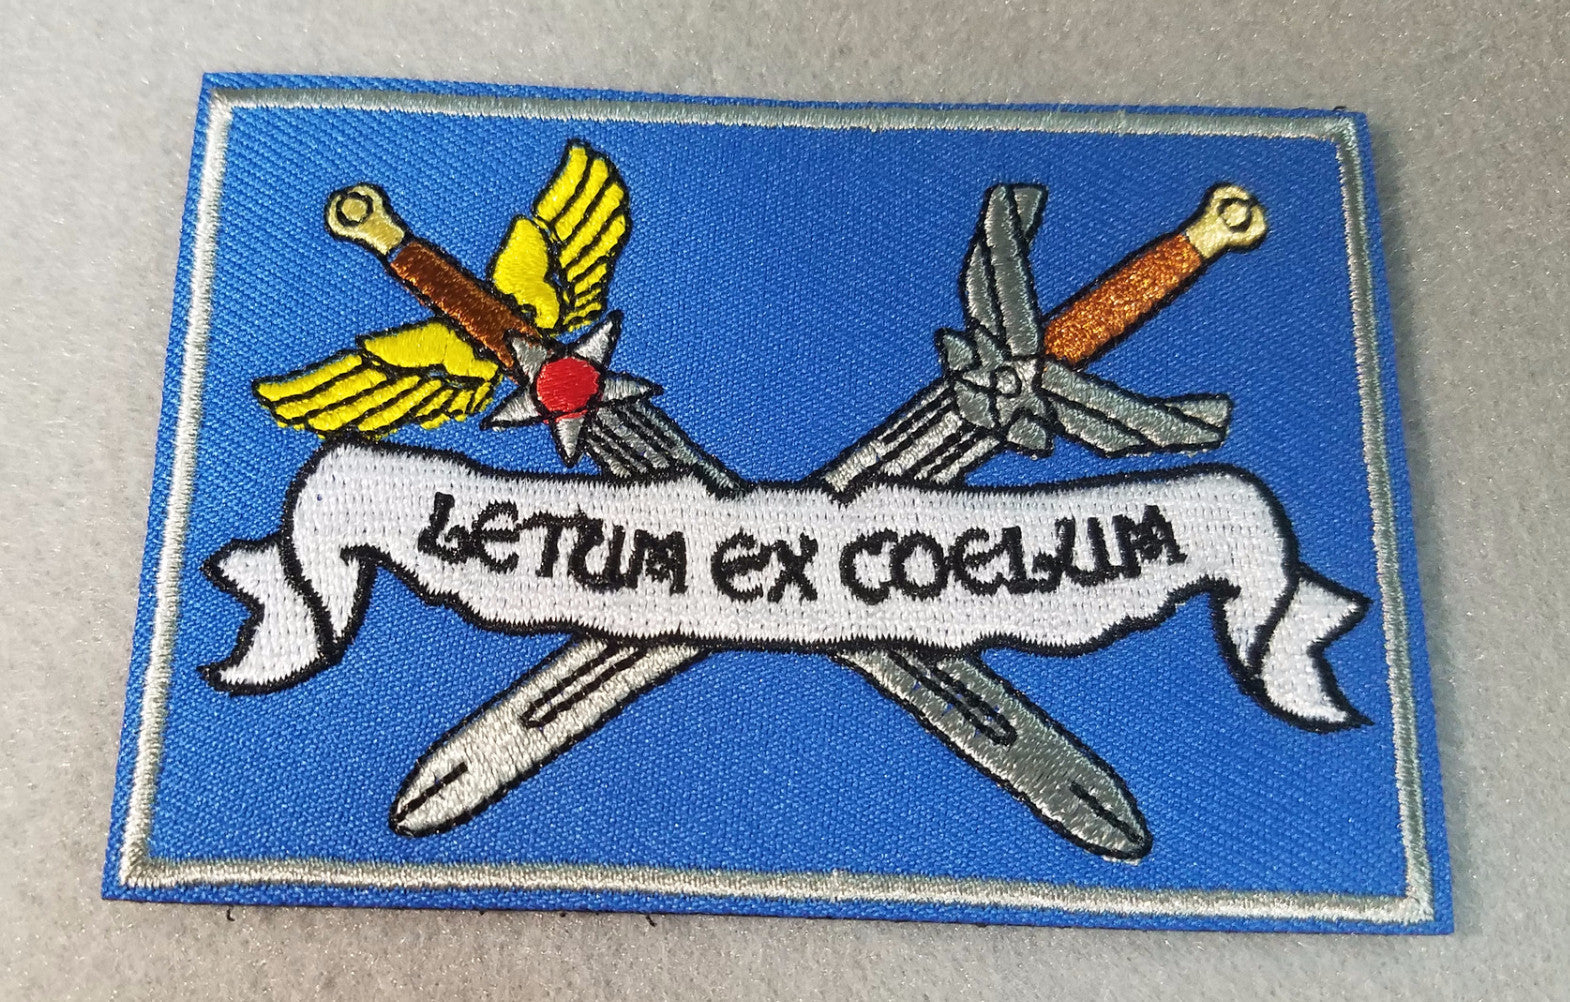 Letum Ex Coelum - Charity Patch - [product_type} - RLH Design Group